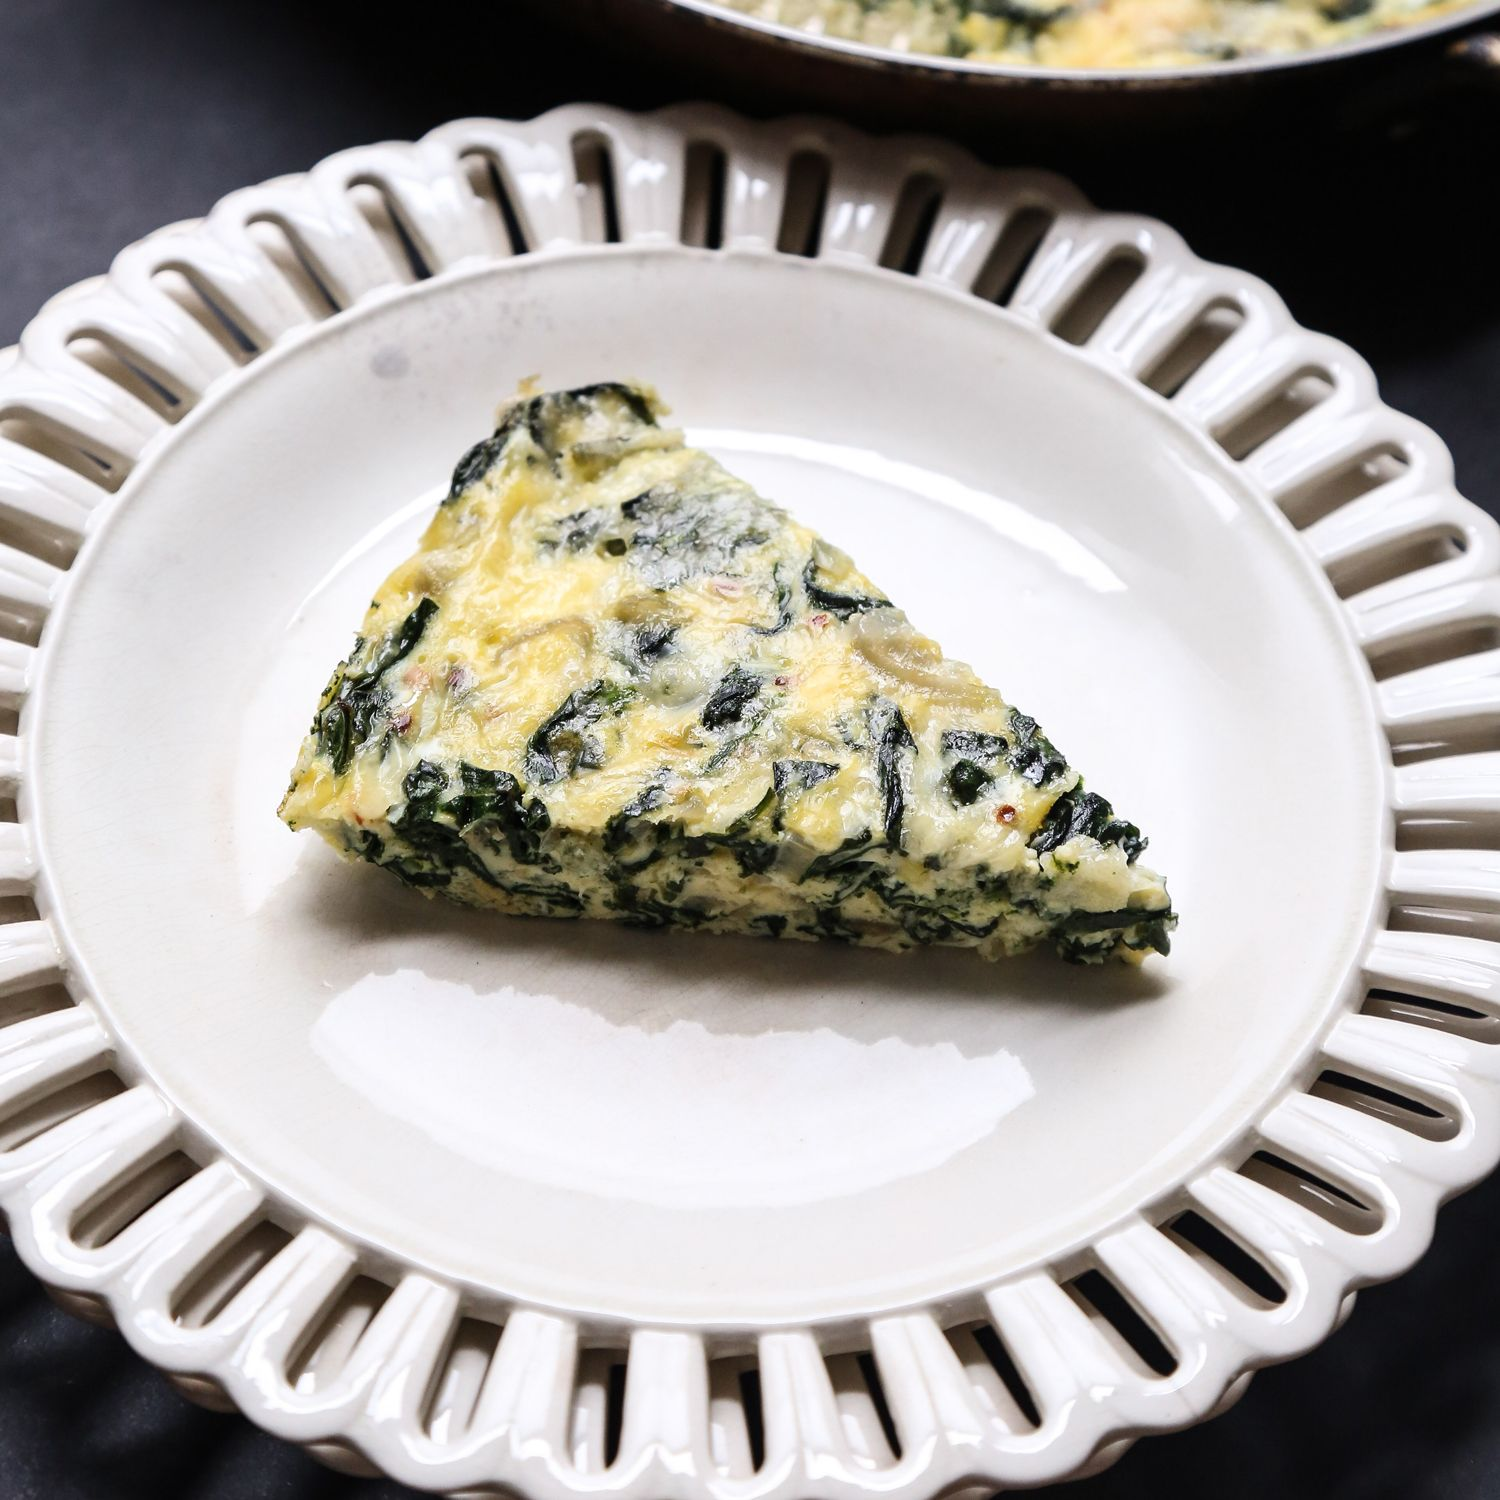 This crustless quiche is similar to a frittata and serves as a great gluten-free alternative. Get the recipe from Food & Wine.